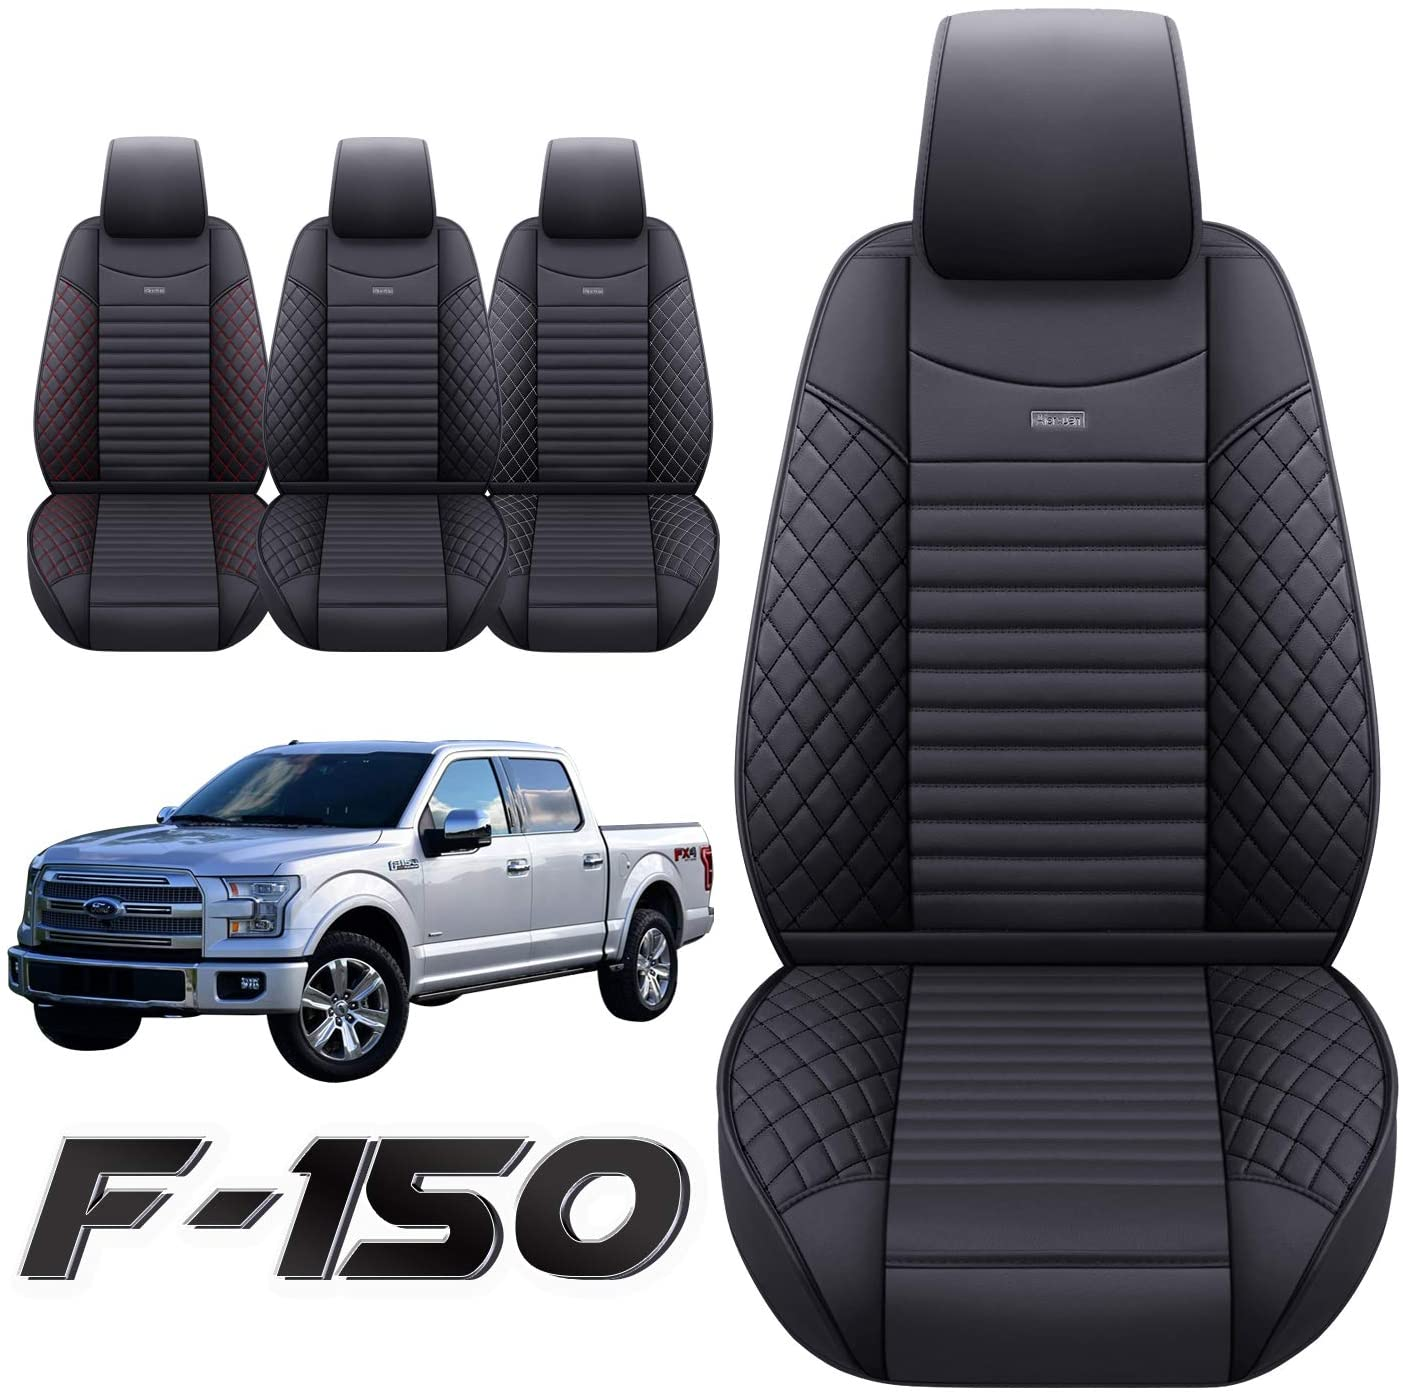 Black Leather  Like 2 Front Car Seat Covers 2010-2021 F-150 #209A